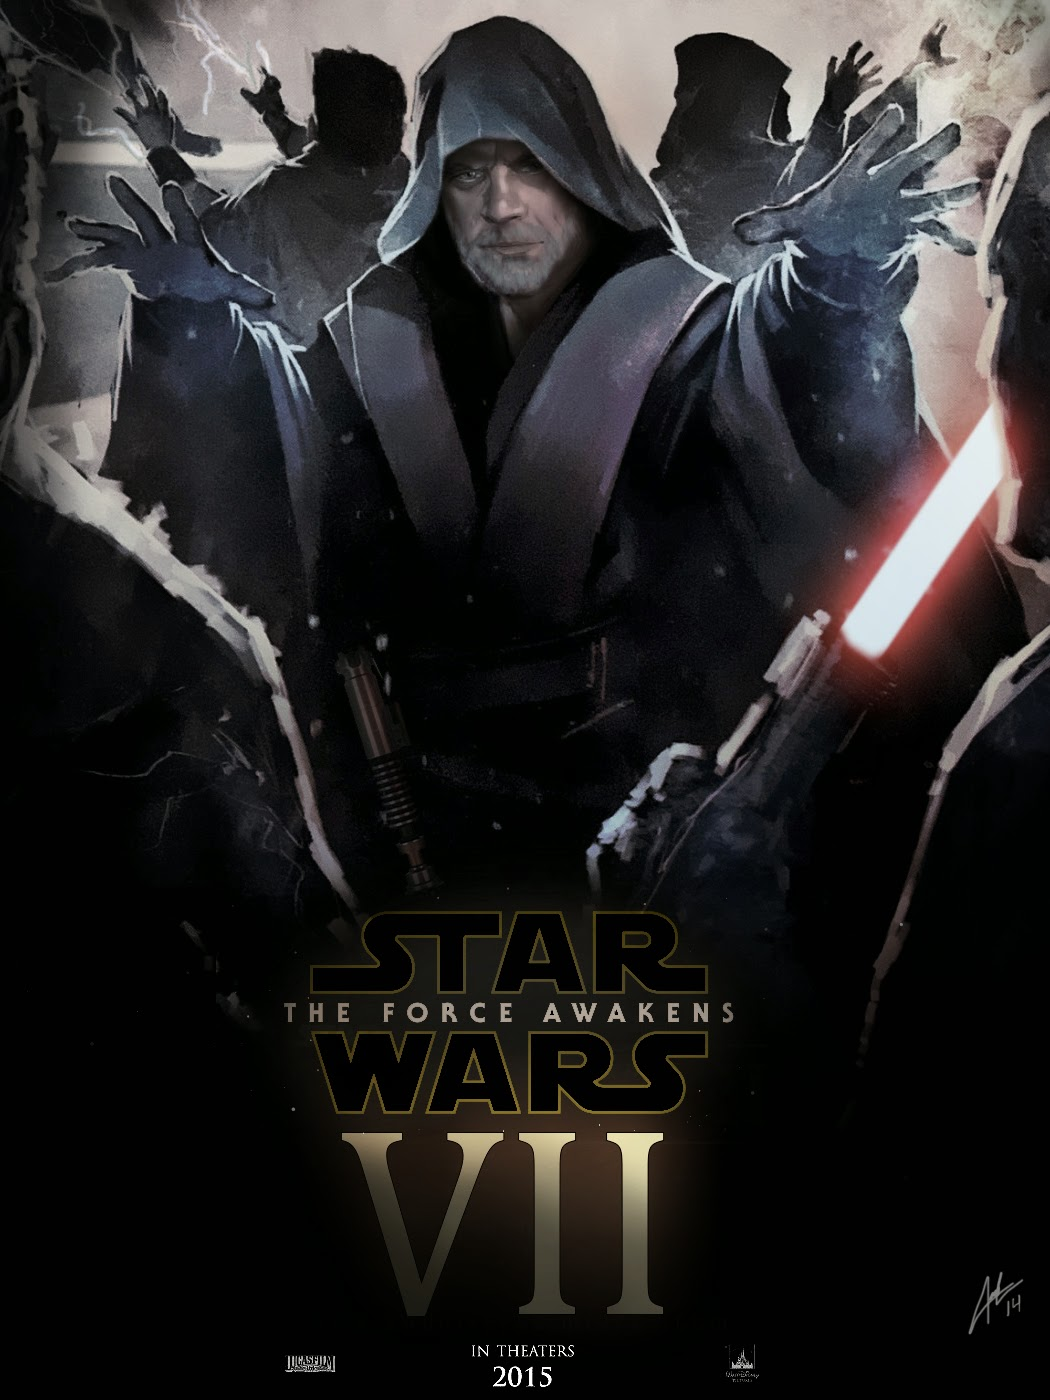 Star Wars VII fan art poster